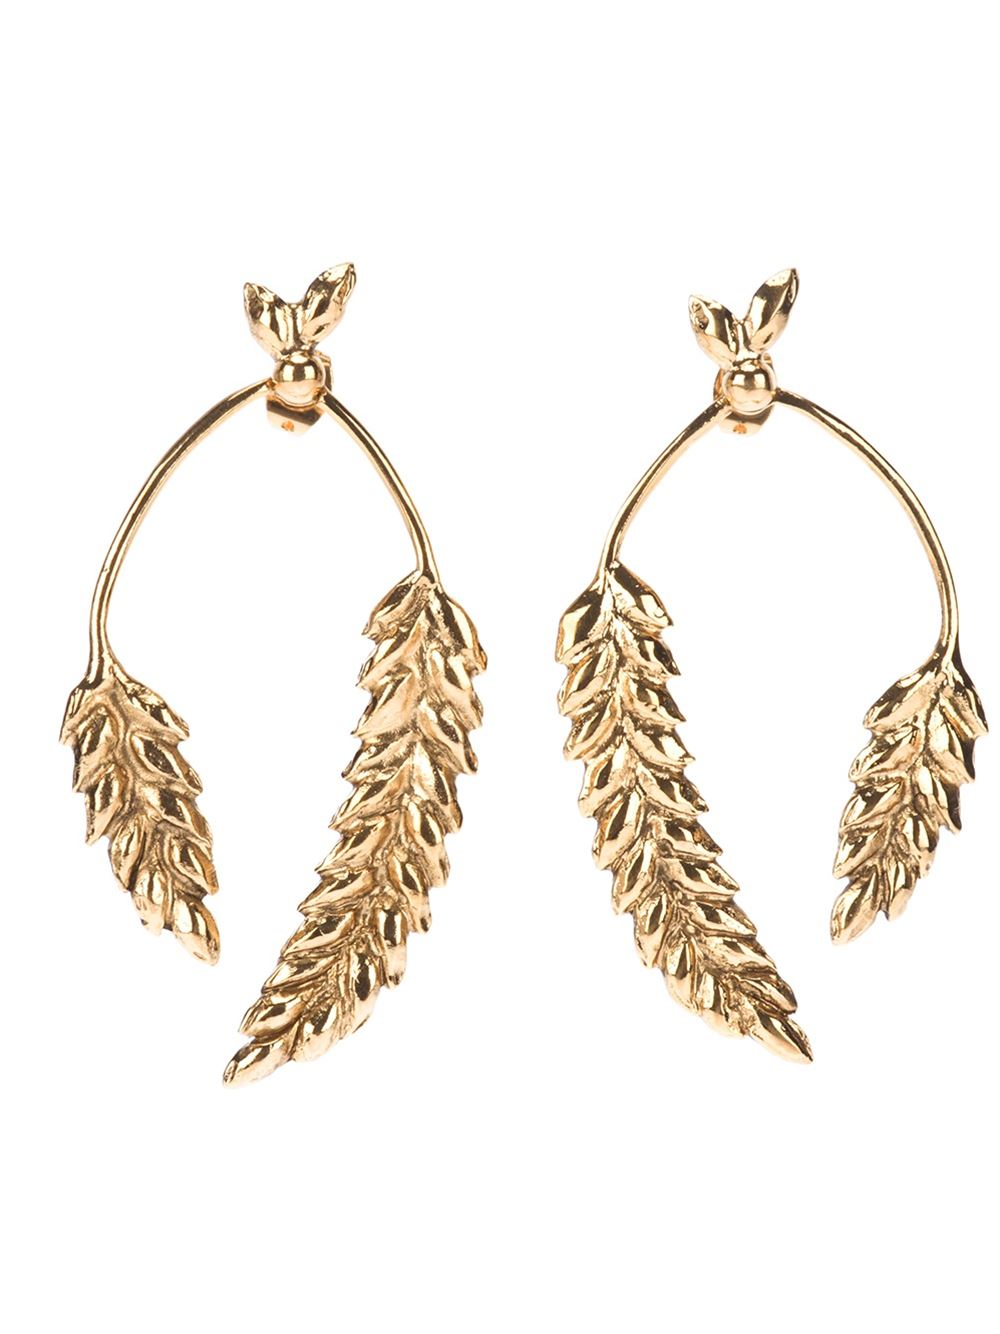 Aurelie Bidermann Wheat earrings | Shop Heaven Has Heels